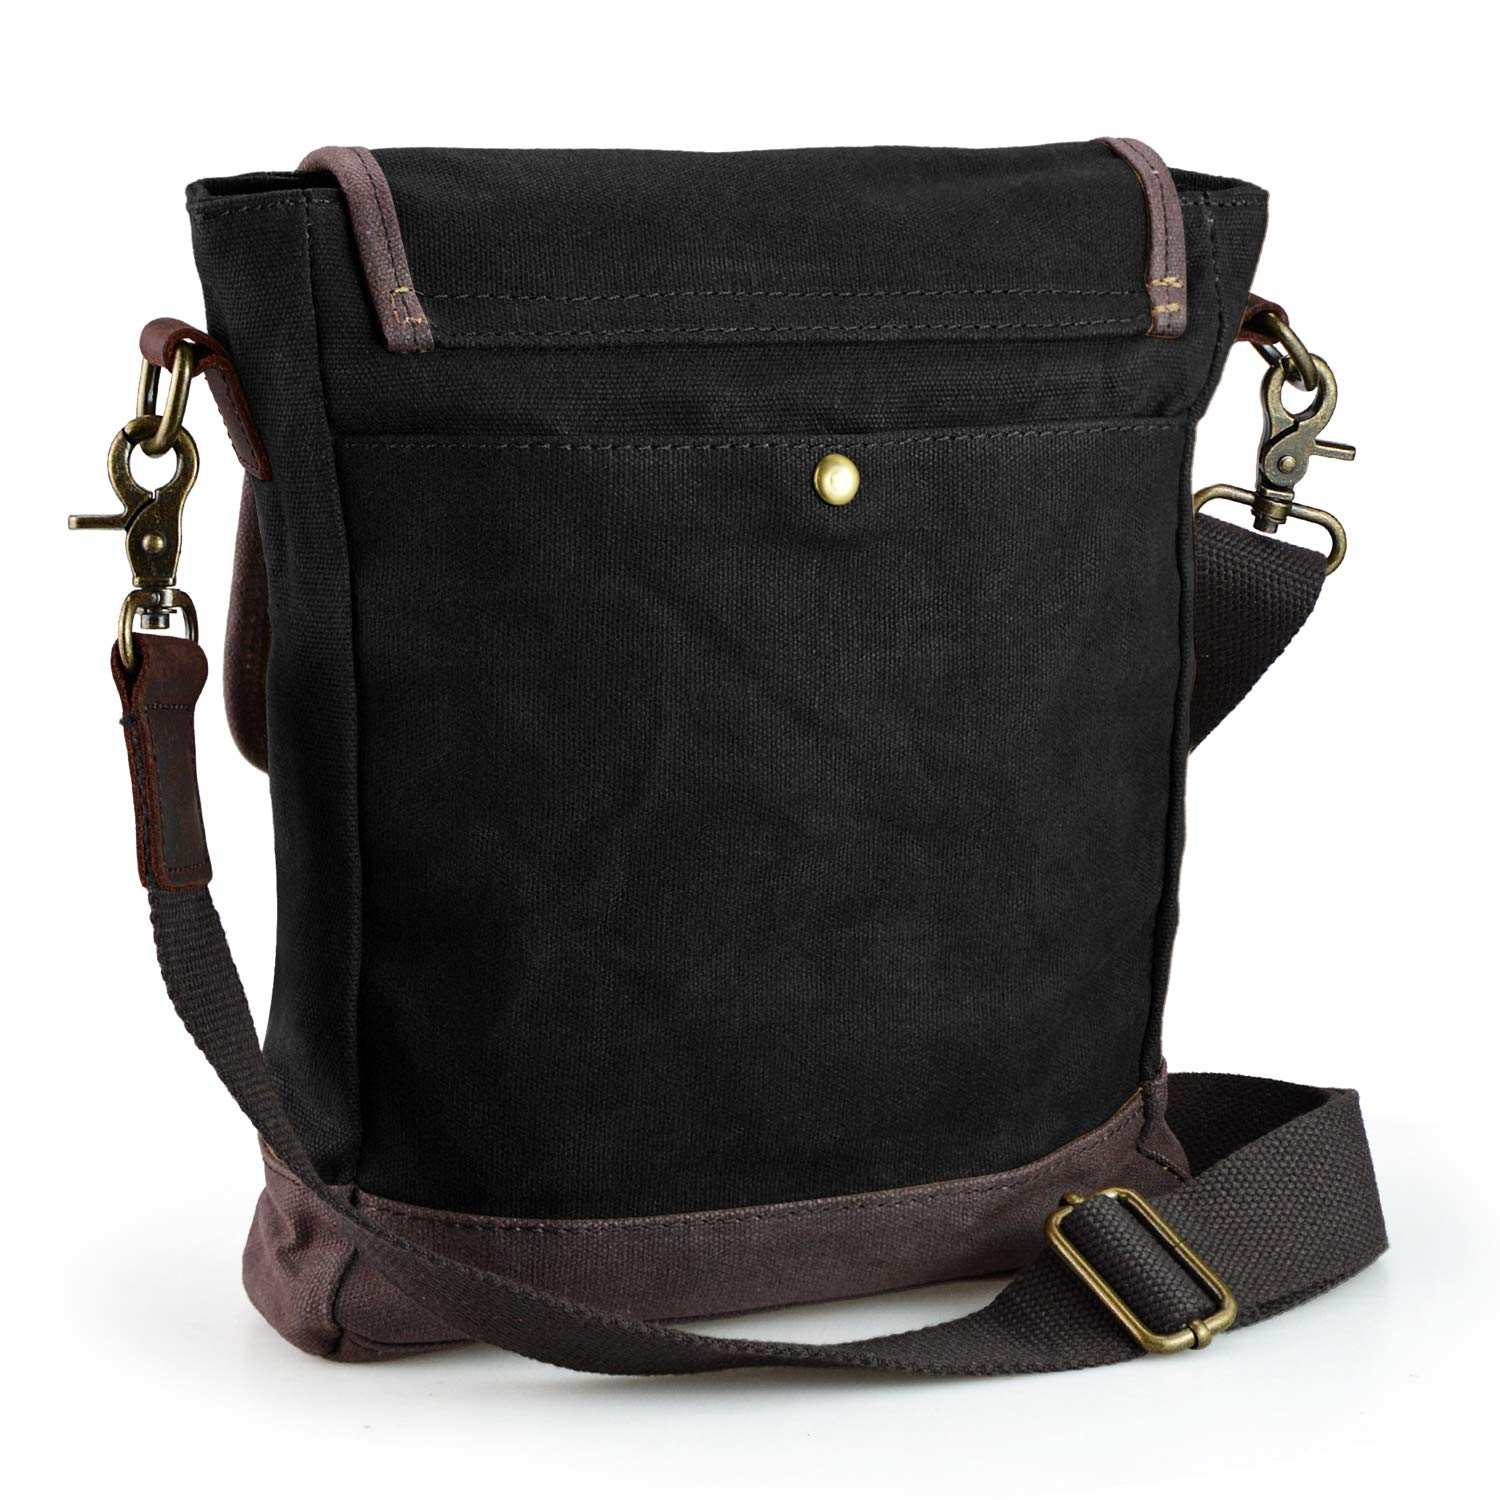 SHANGRI-LA Small Messenger Bag for Men and Women Waxed Canvas Purse Waterproof Crossbody Satchel Bag Sling Pack for Trip Travel Black